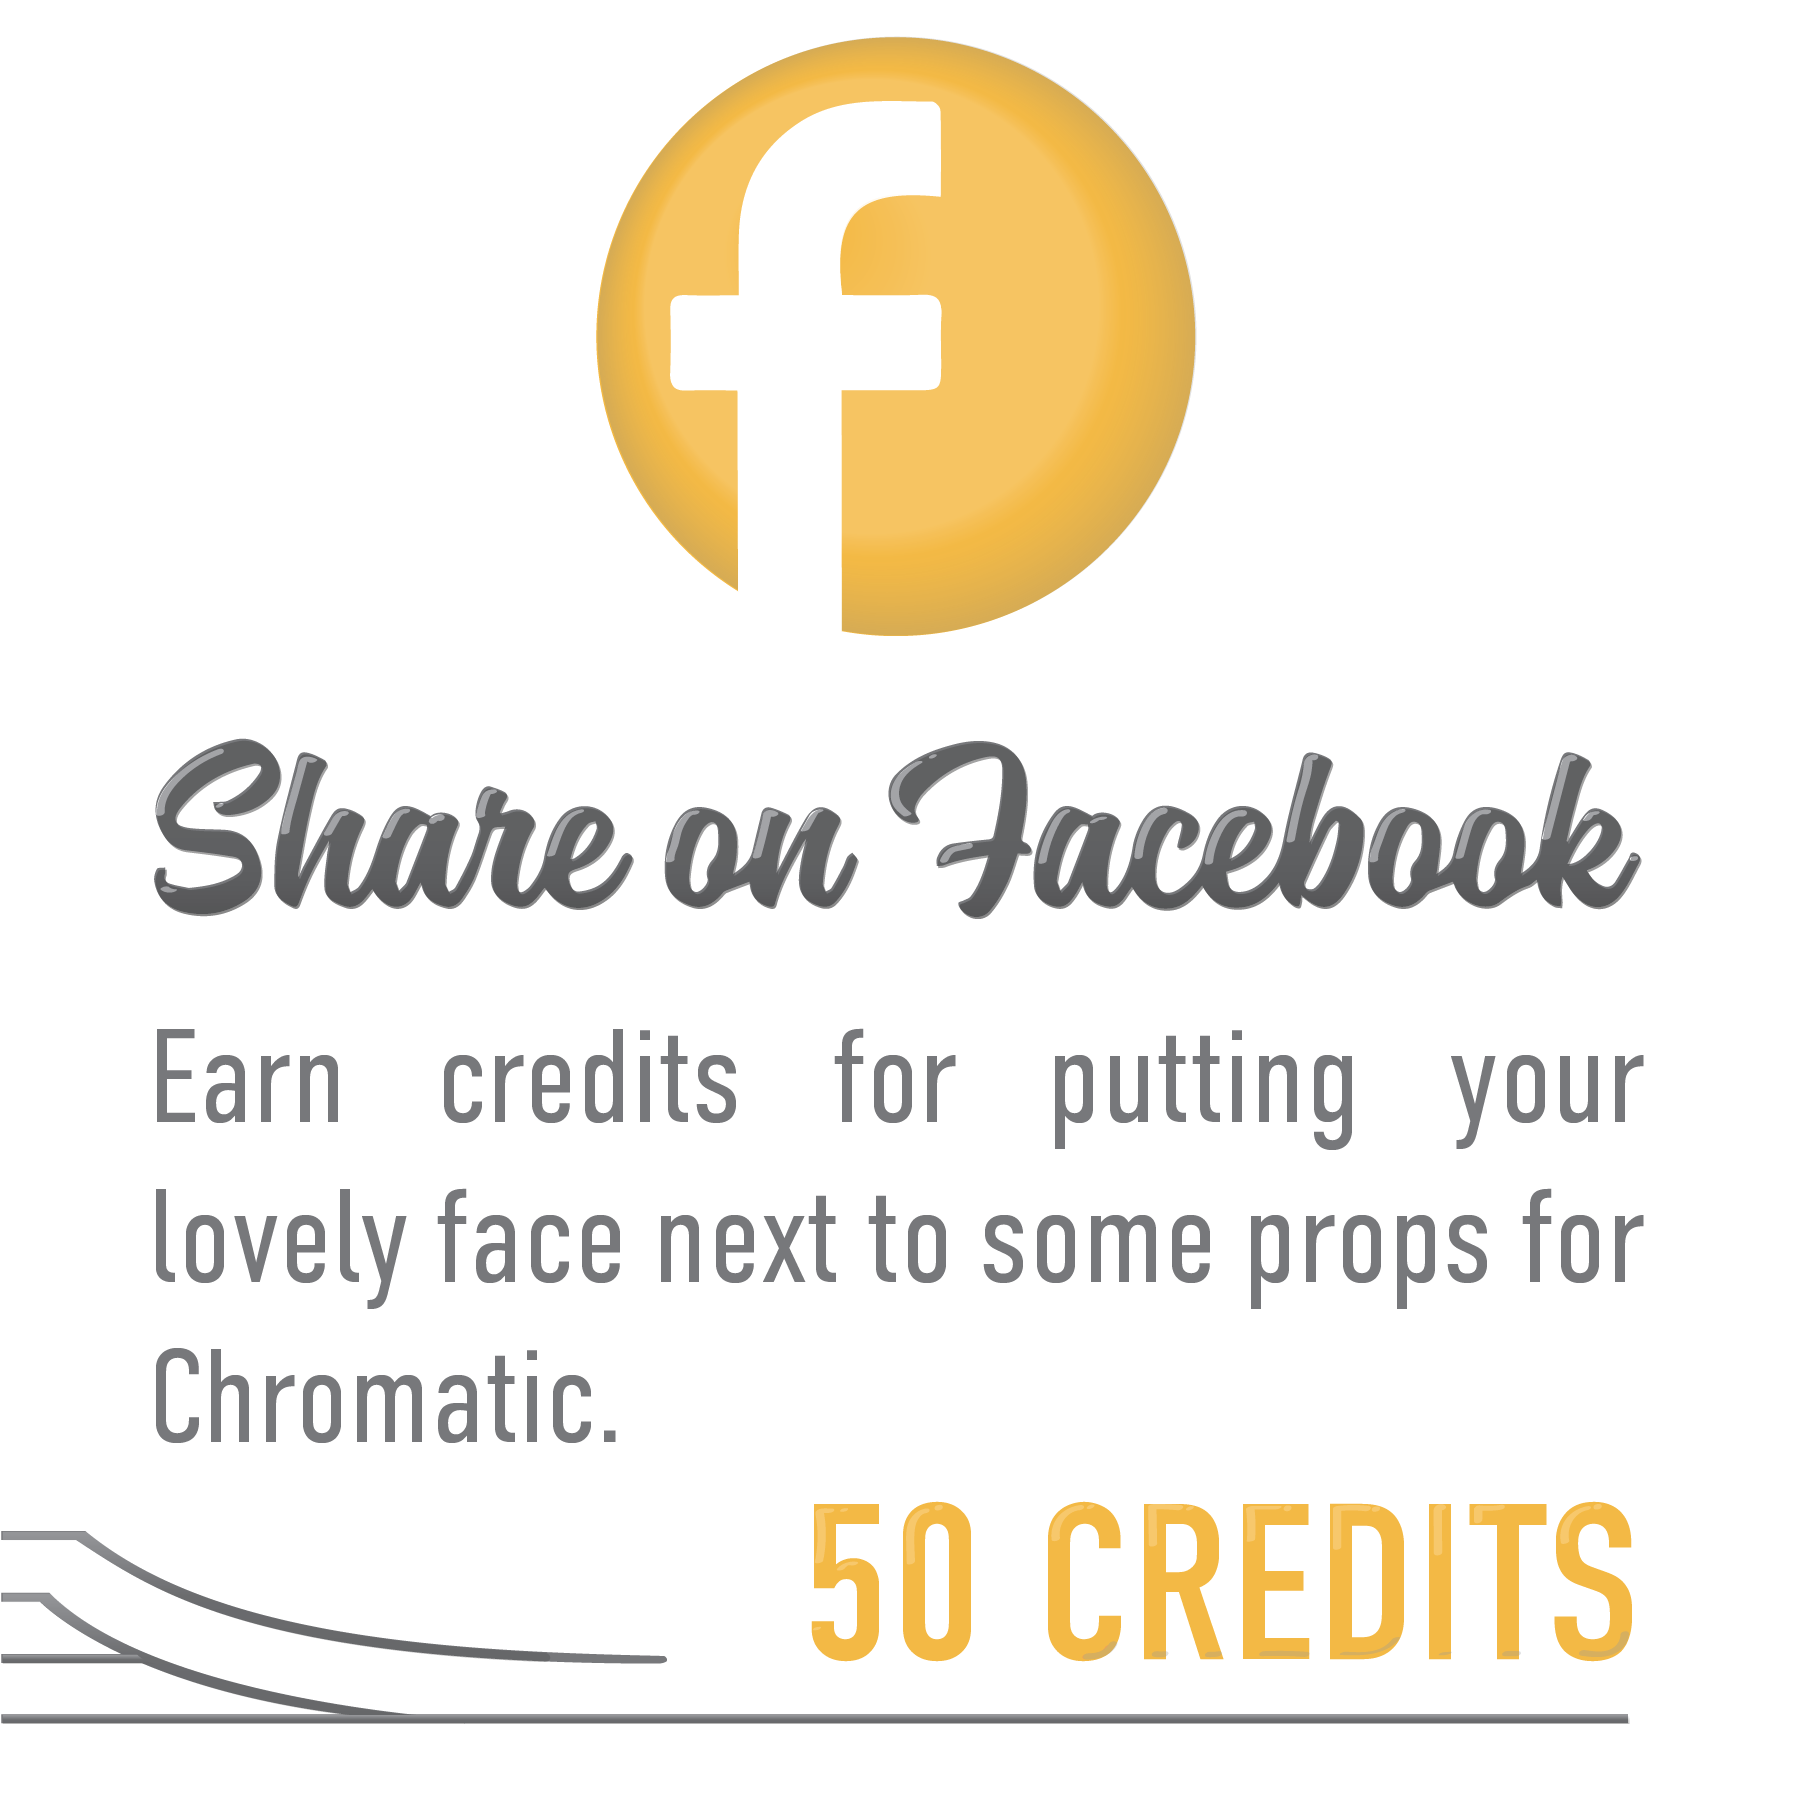 explainer-earn-credits-03.png